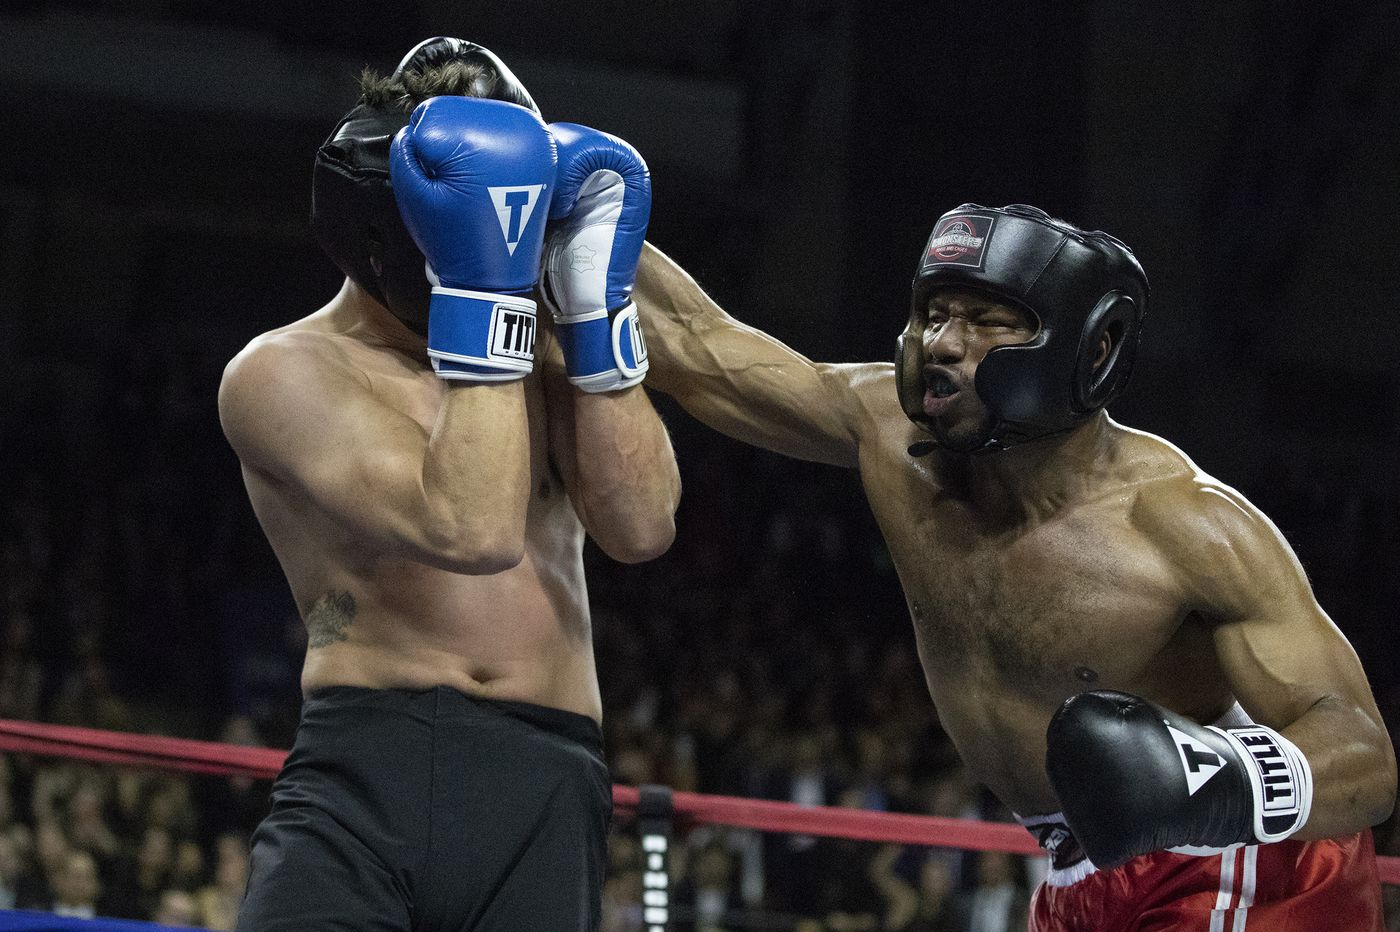 Penn Fight Night: Blood, sweat and cocktails mix for a good cause at the Palestra